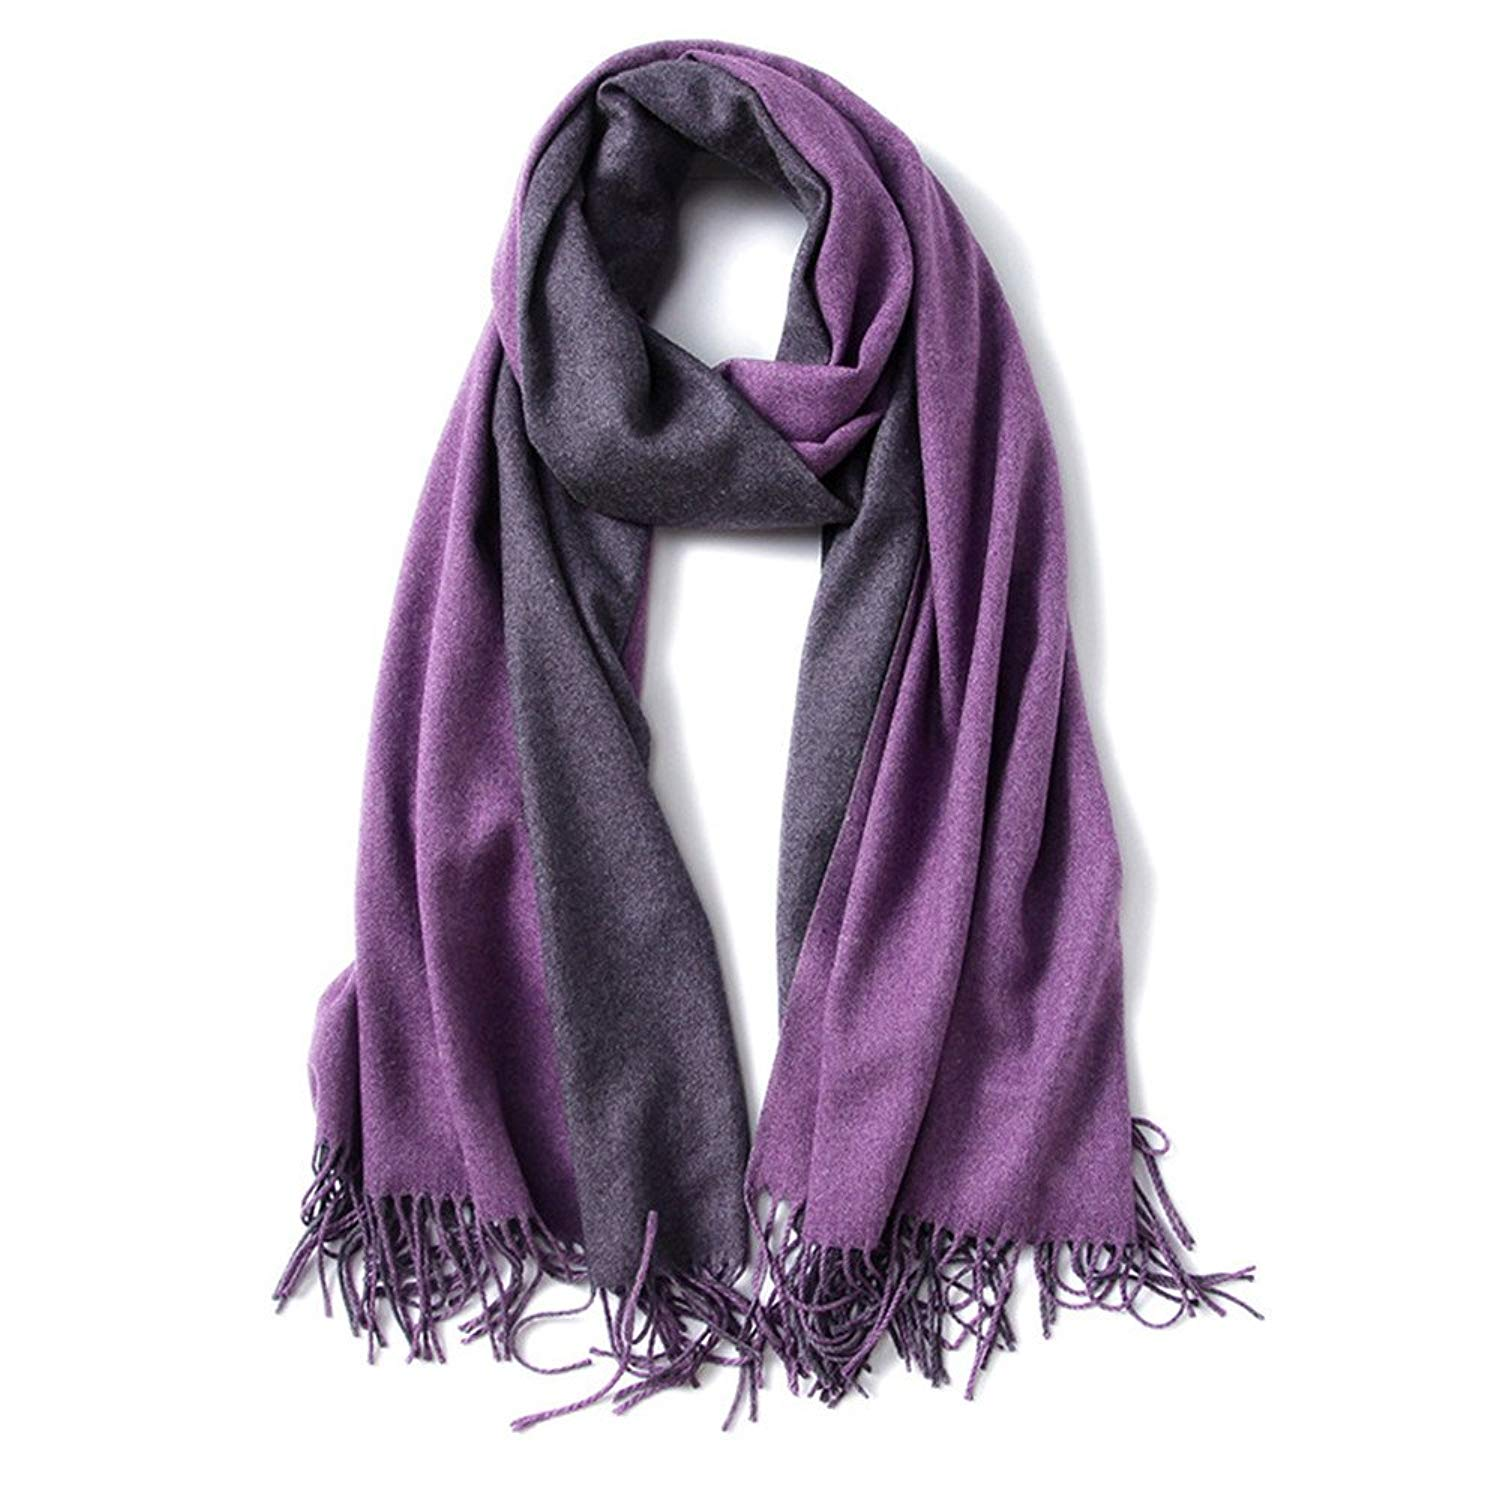 f756e40a2 Get Quotations · TopliTrend Womens Fringed Large Soft Cashmere Feel Thick  Warm Shawls Wraps Light Scarf